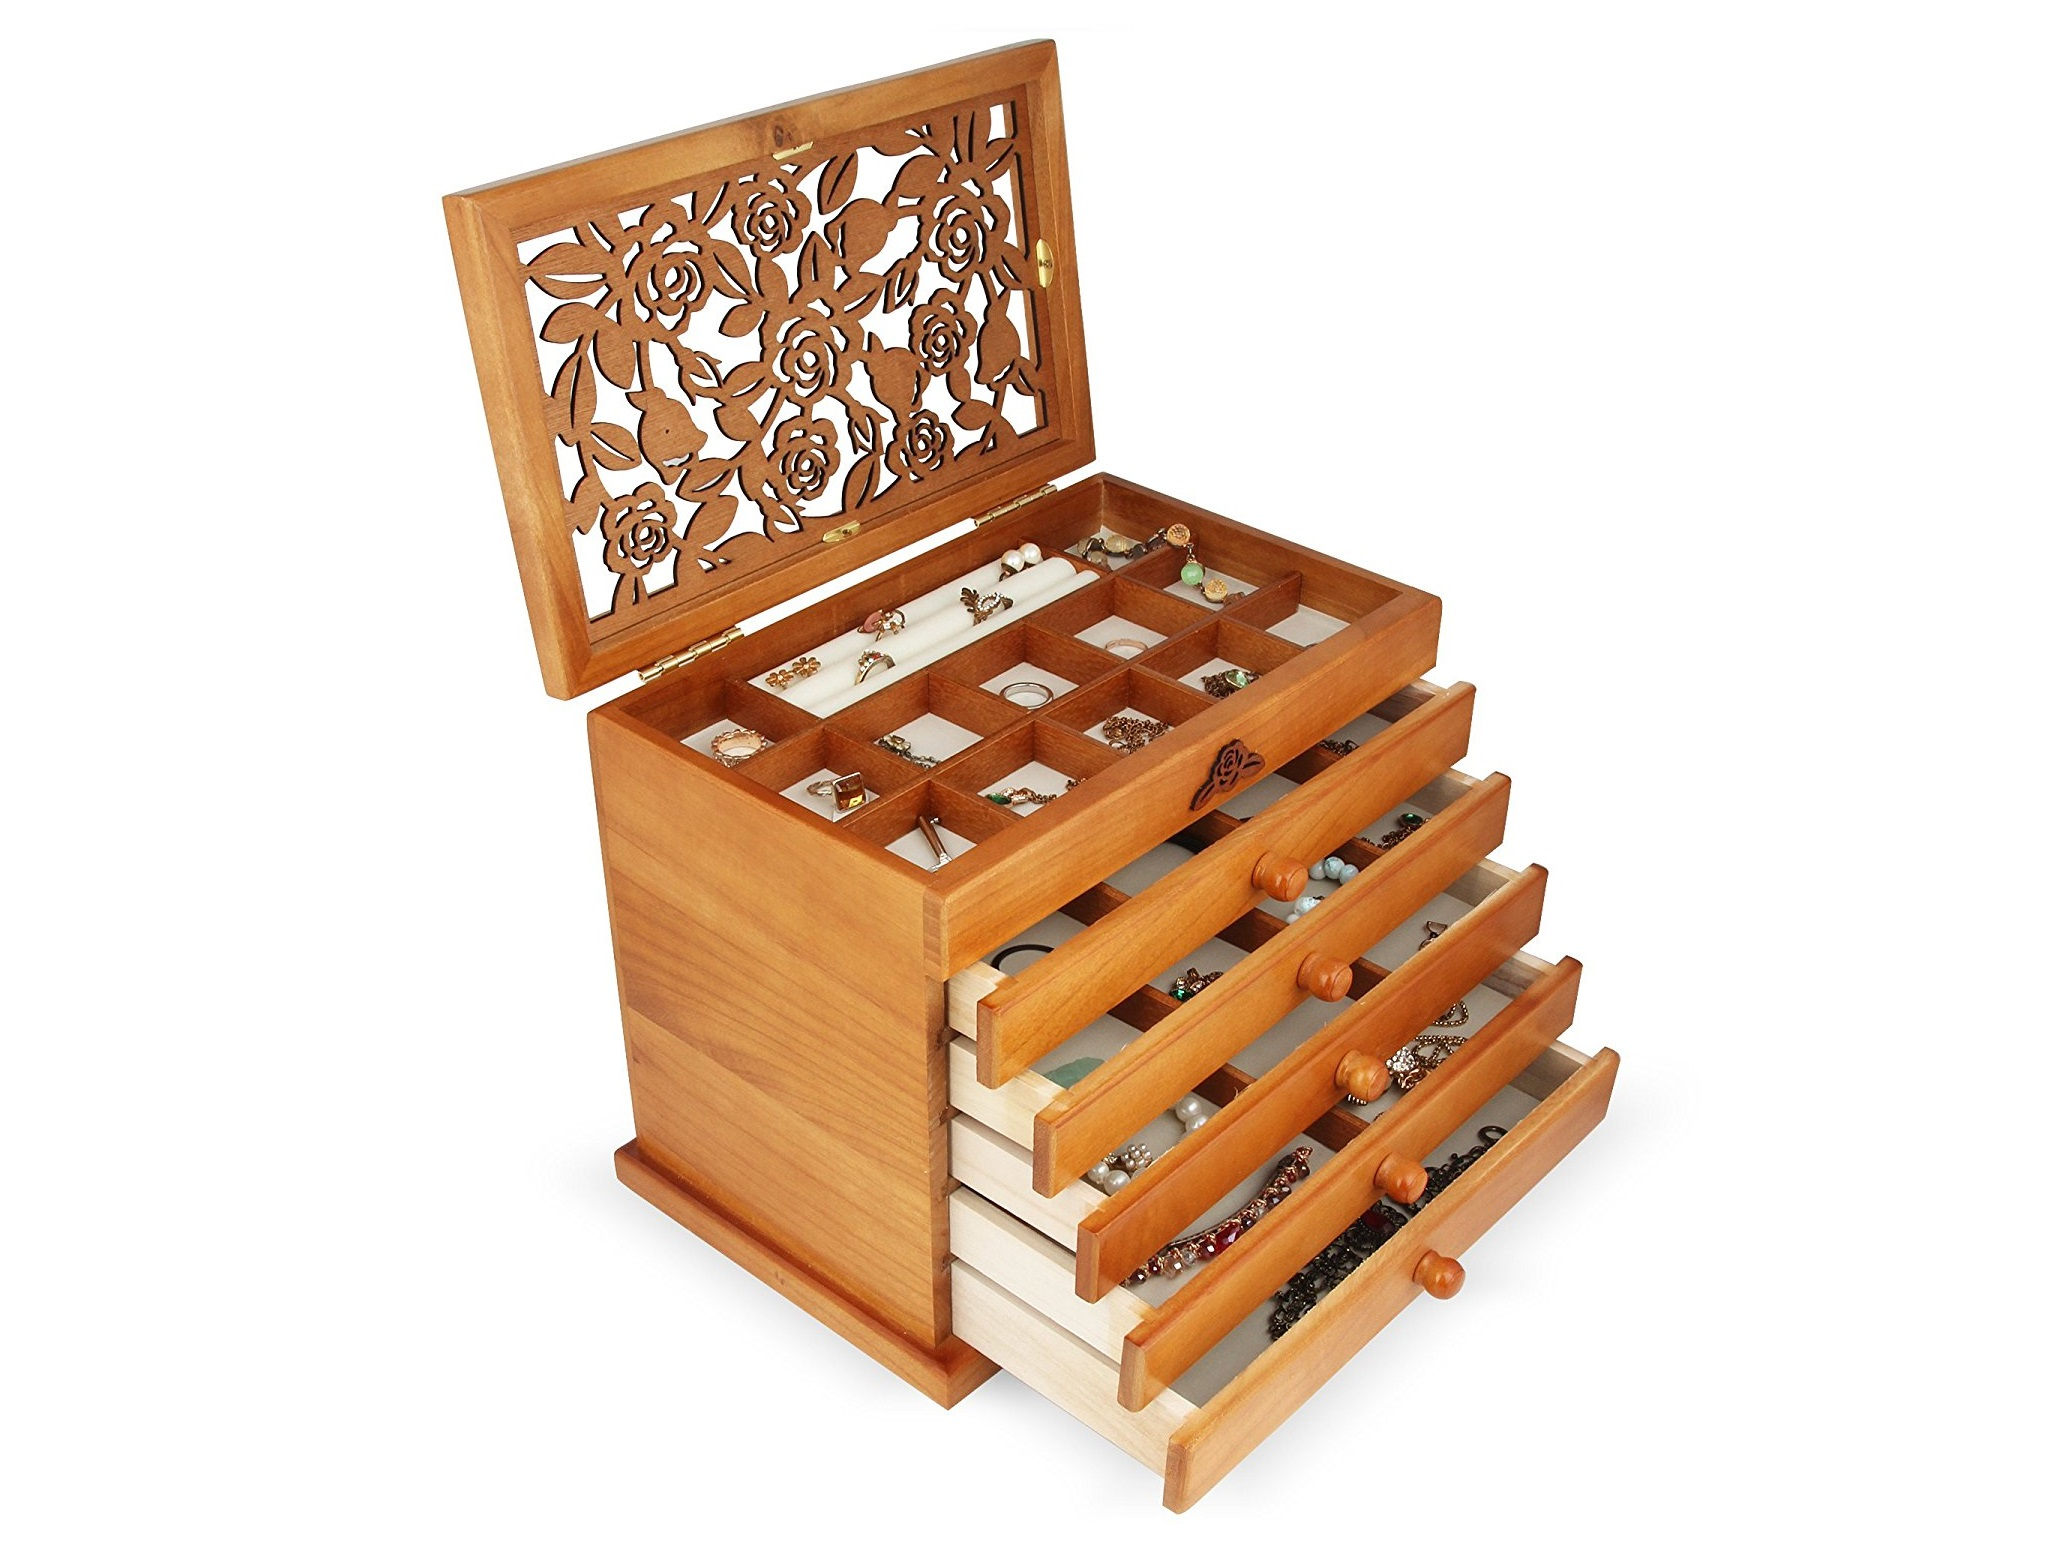 Top 10 Best Wooden Jewelry Boxes in 2019